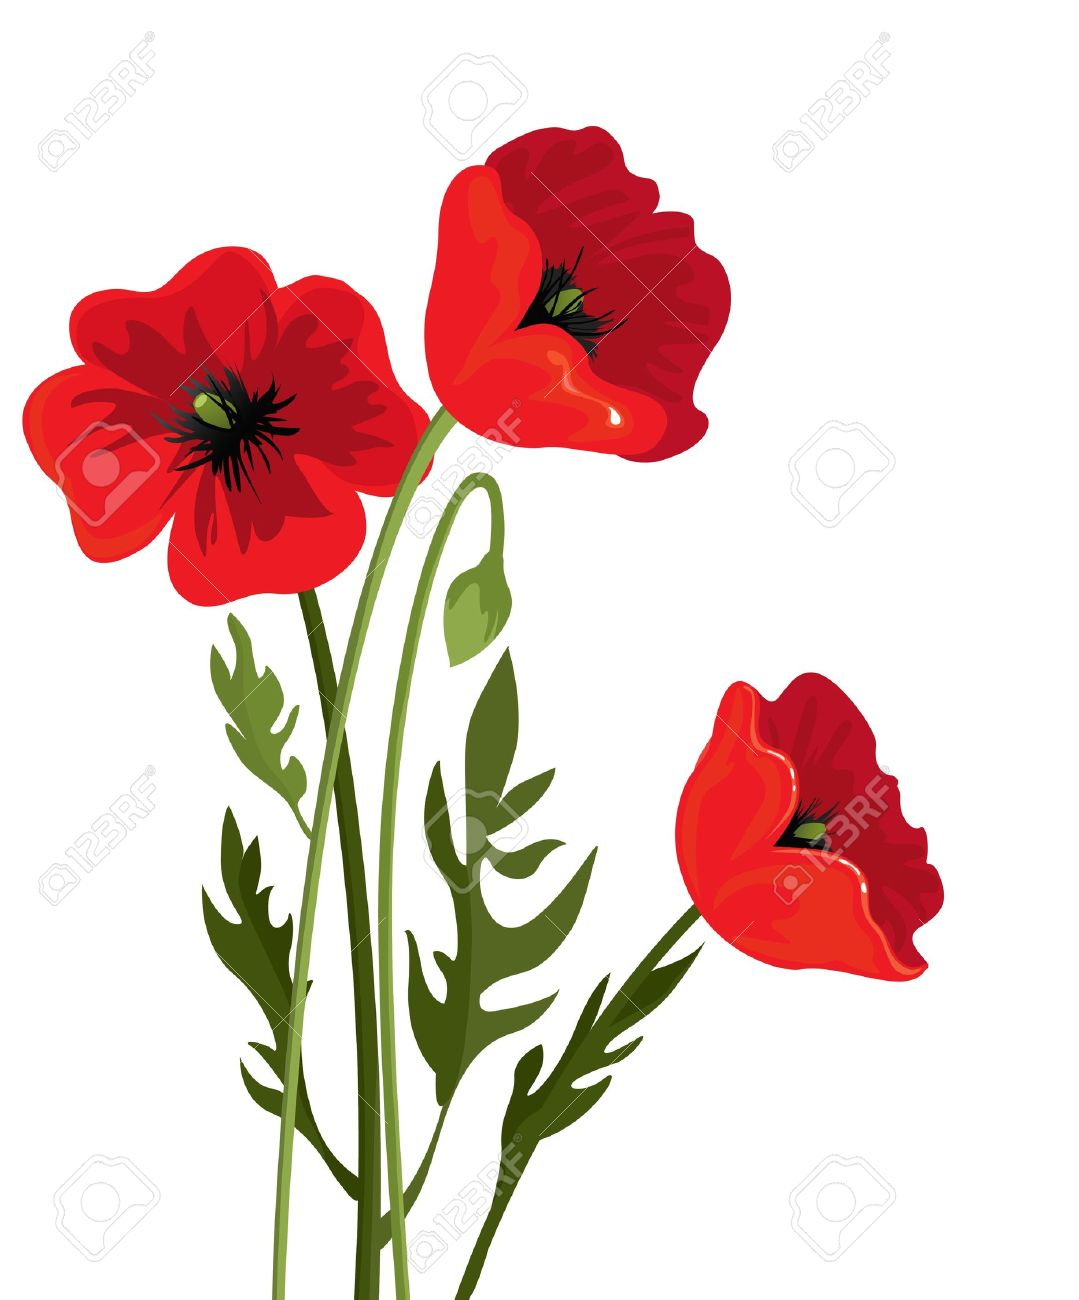 15,795 Poppy Flower Stock Vector Illustration And Royalty Free ...